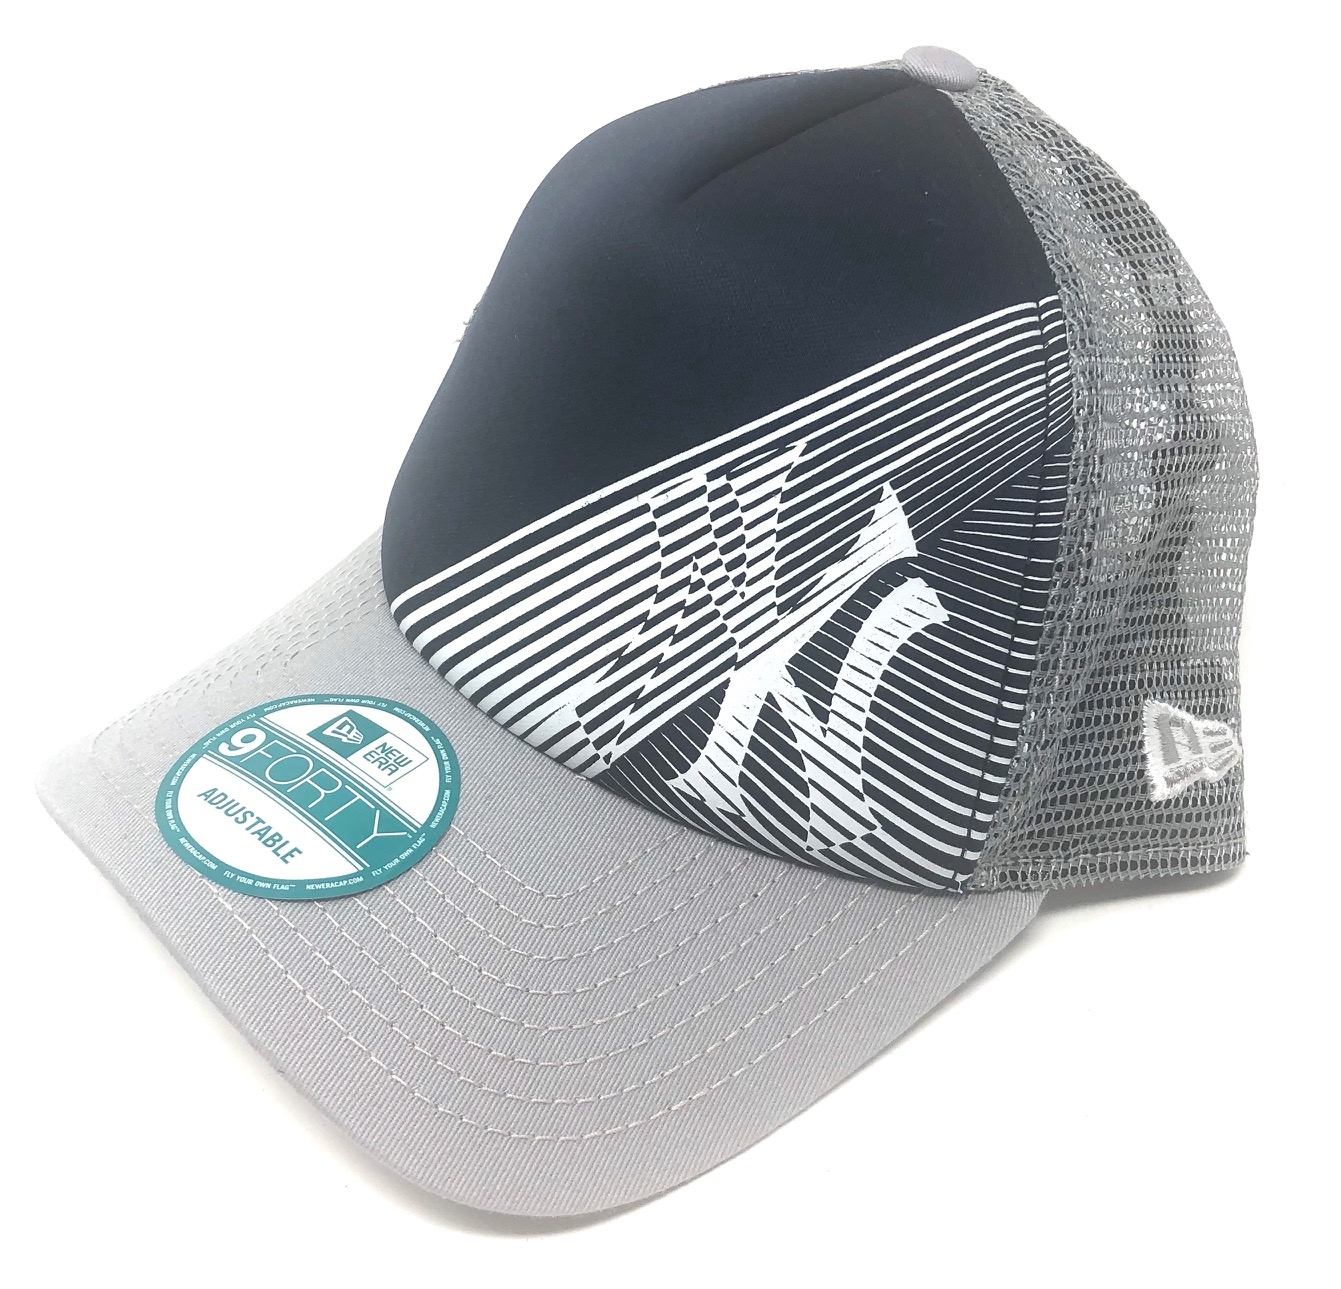 Oakley-Men-039-s-New-York-Yankees-New-Era-9FORTY-MLB-Baseball-Trucker-Hat-Cap miniature 3